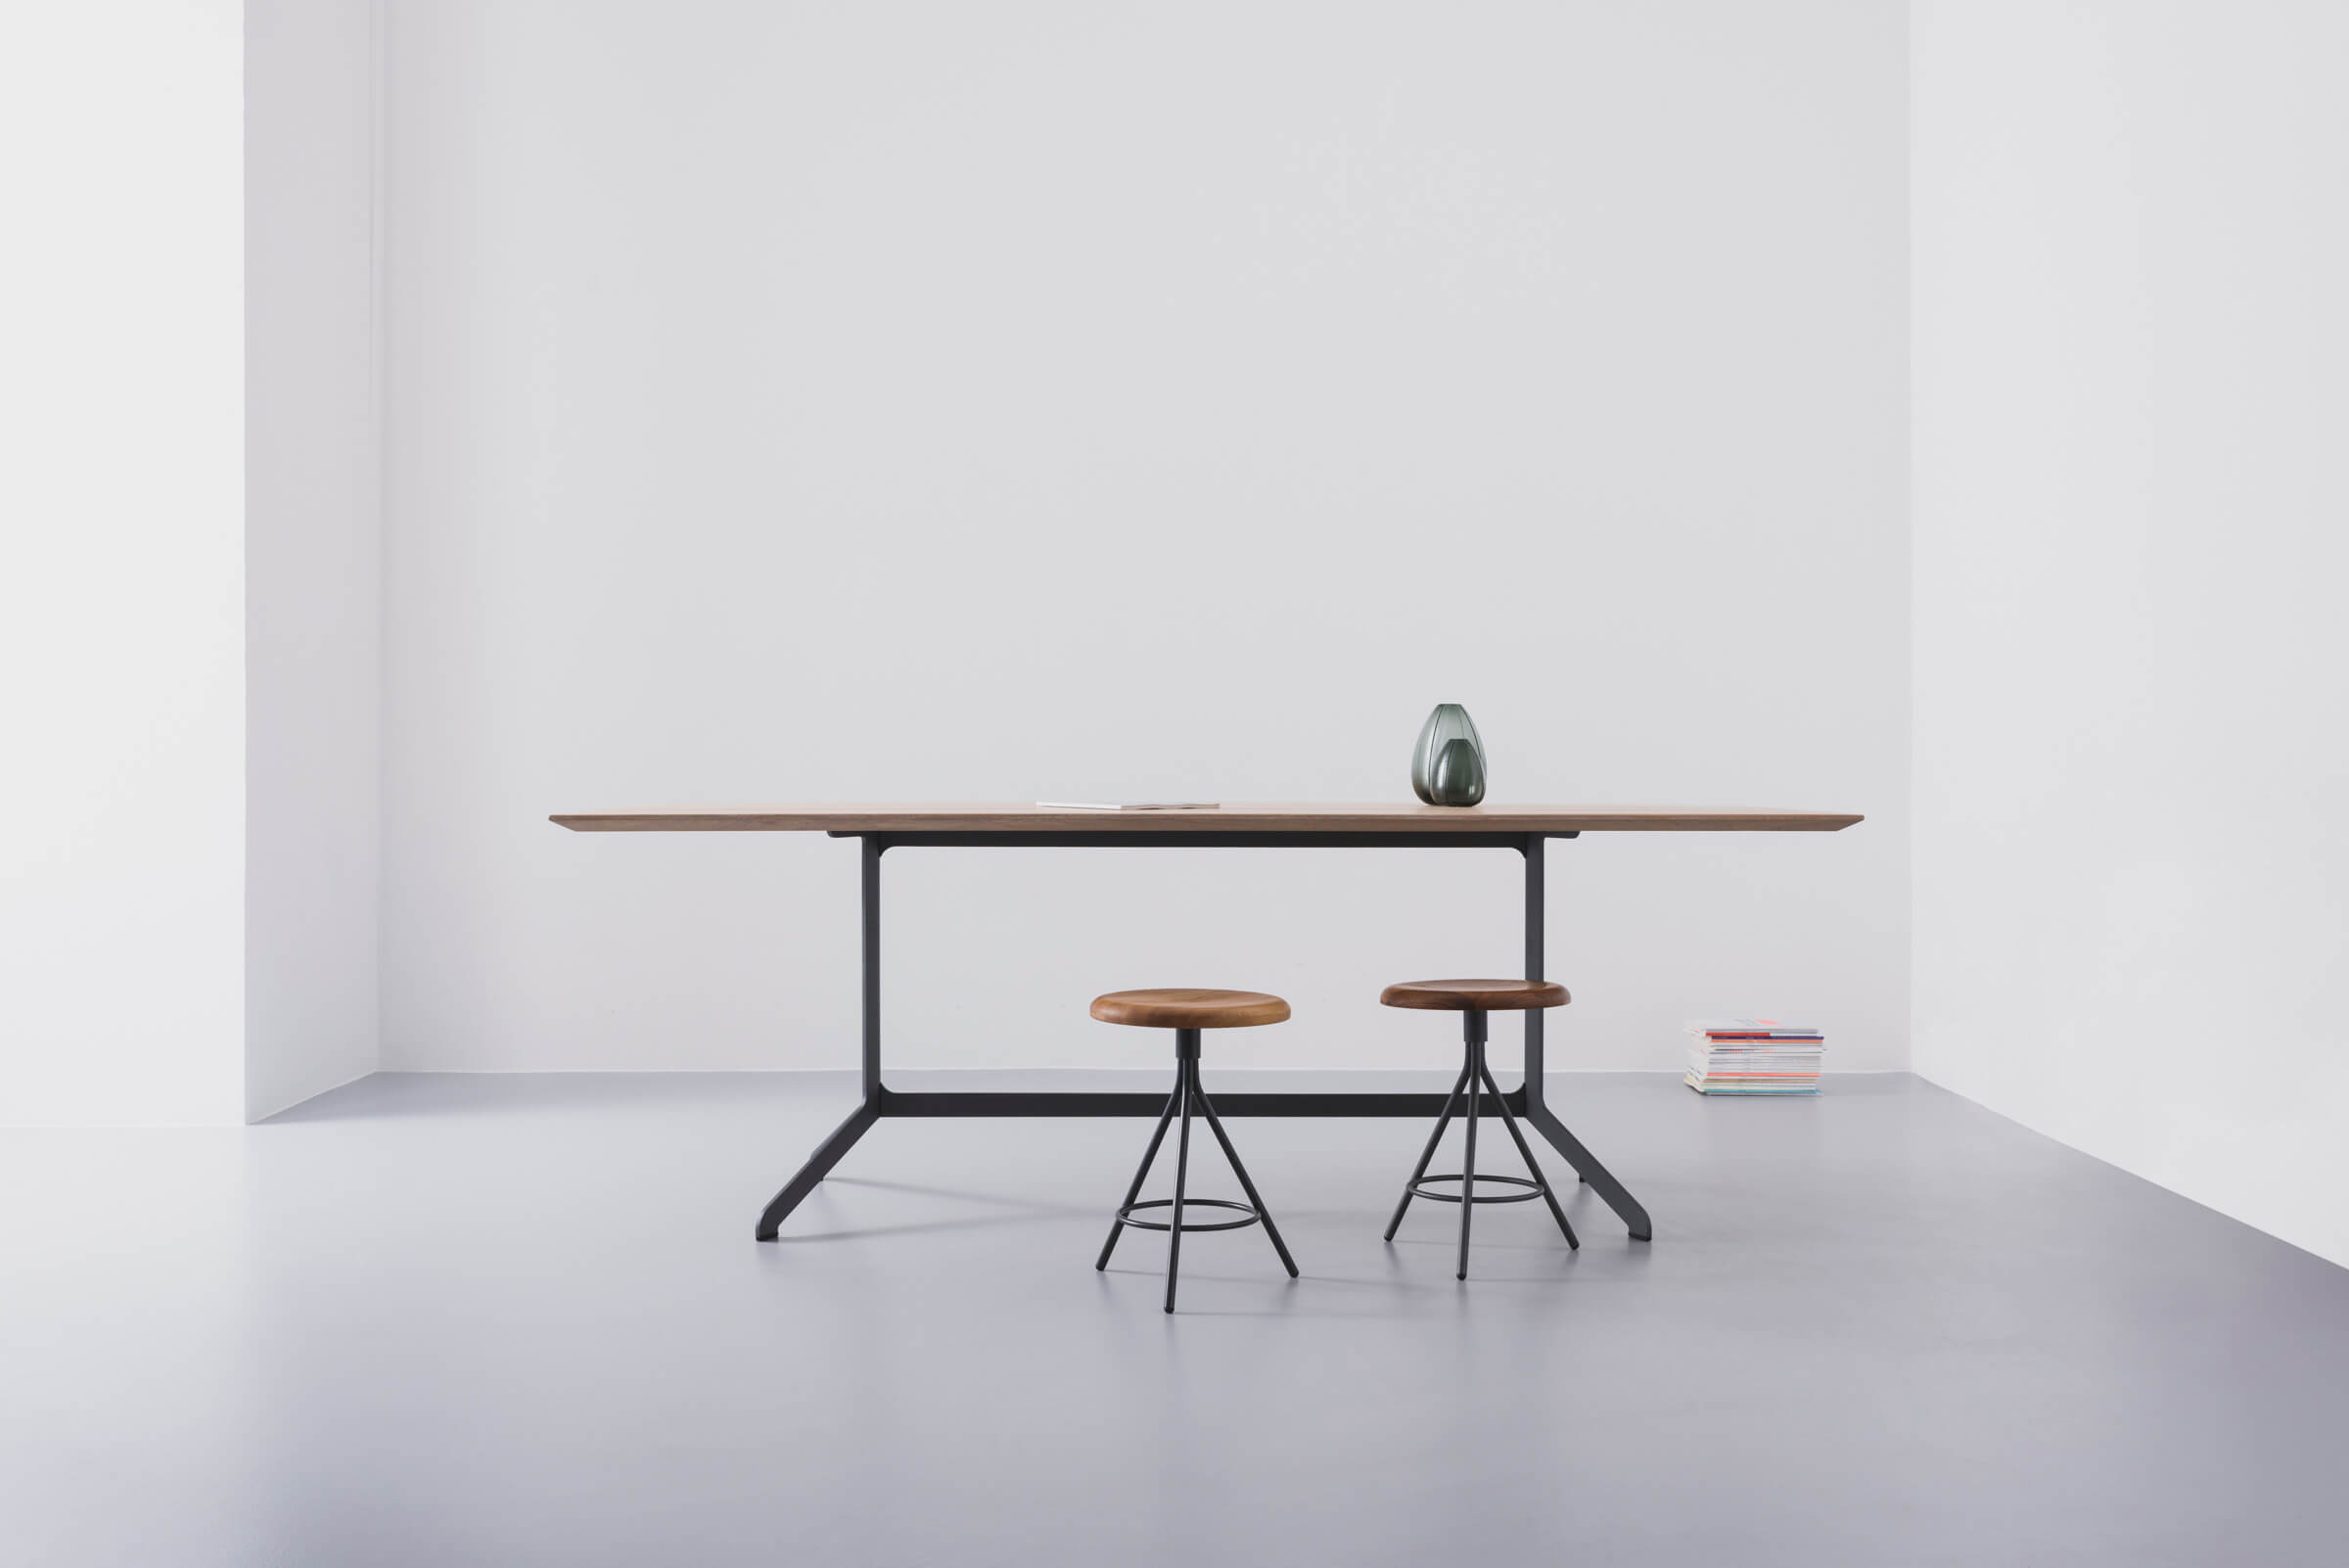 THOMAS WIUF SCHWARTZ ASCO Shape Table